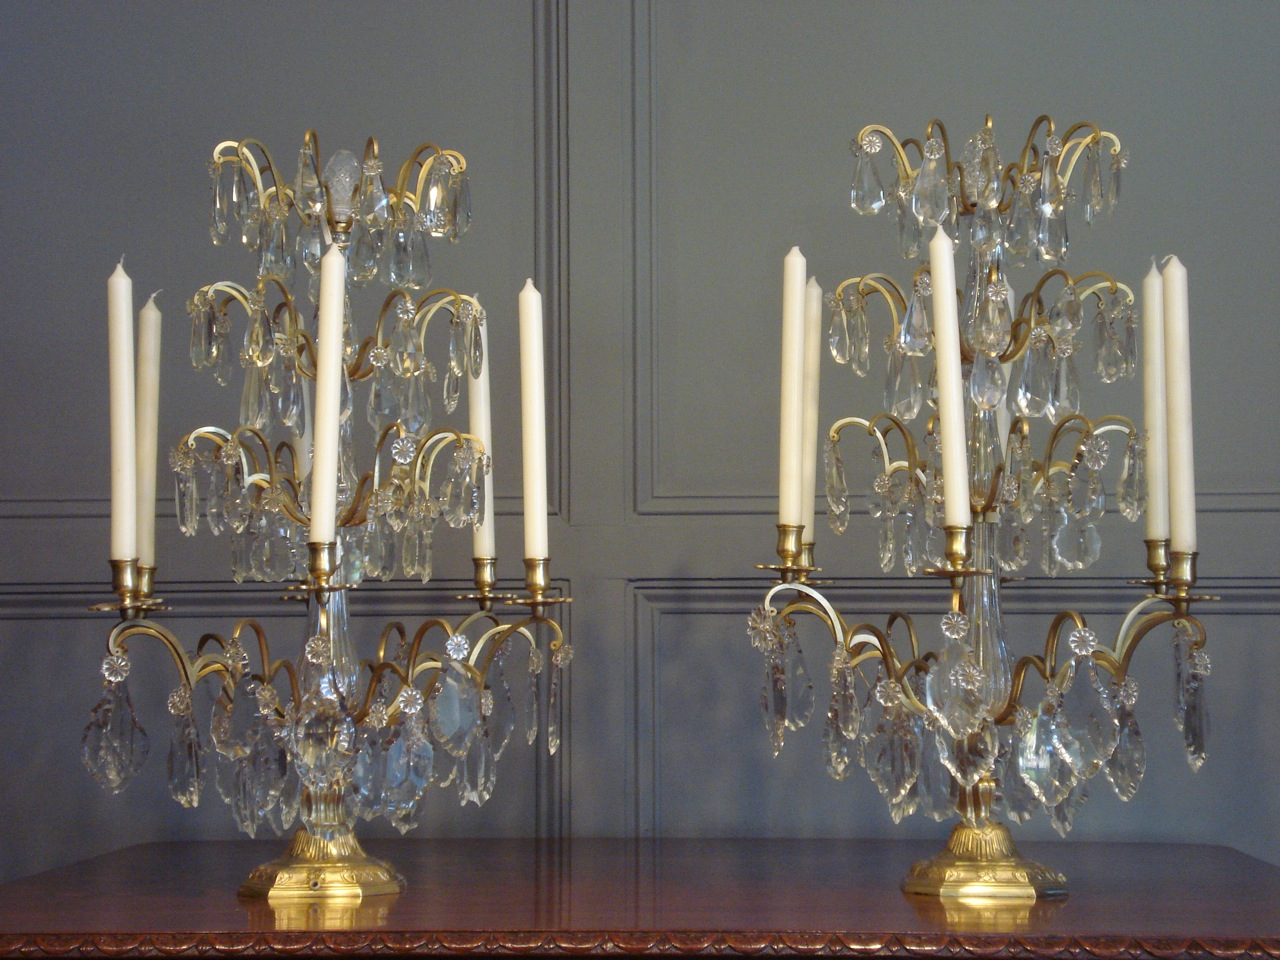 SOLD/PAIR OF GIRANDOLES OR TABLE CHANDELIERS